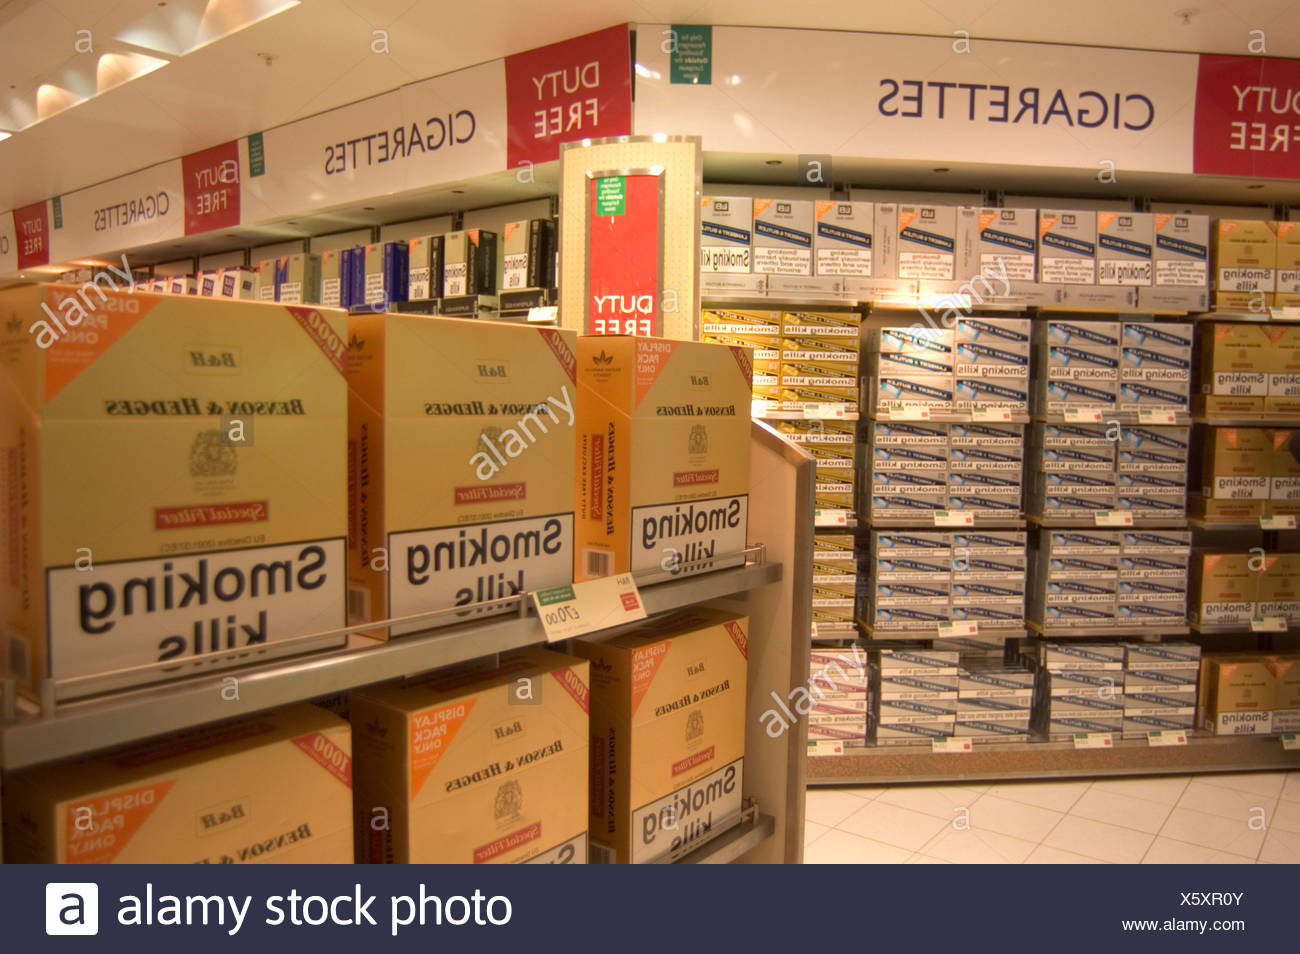 airport Gatwick boxes Cigarettes Duty free duty free trade purchase shelves shopping smoker´s goods smokin - Stock Image